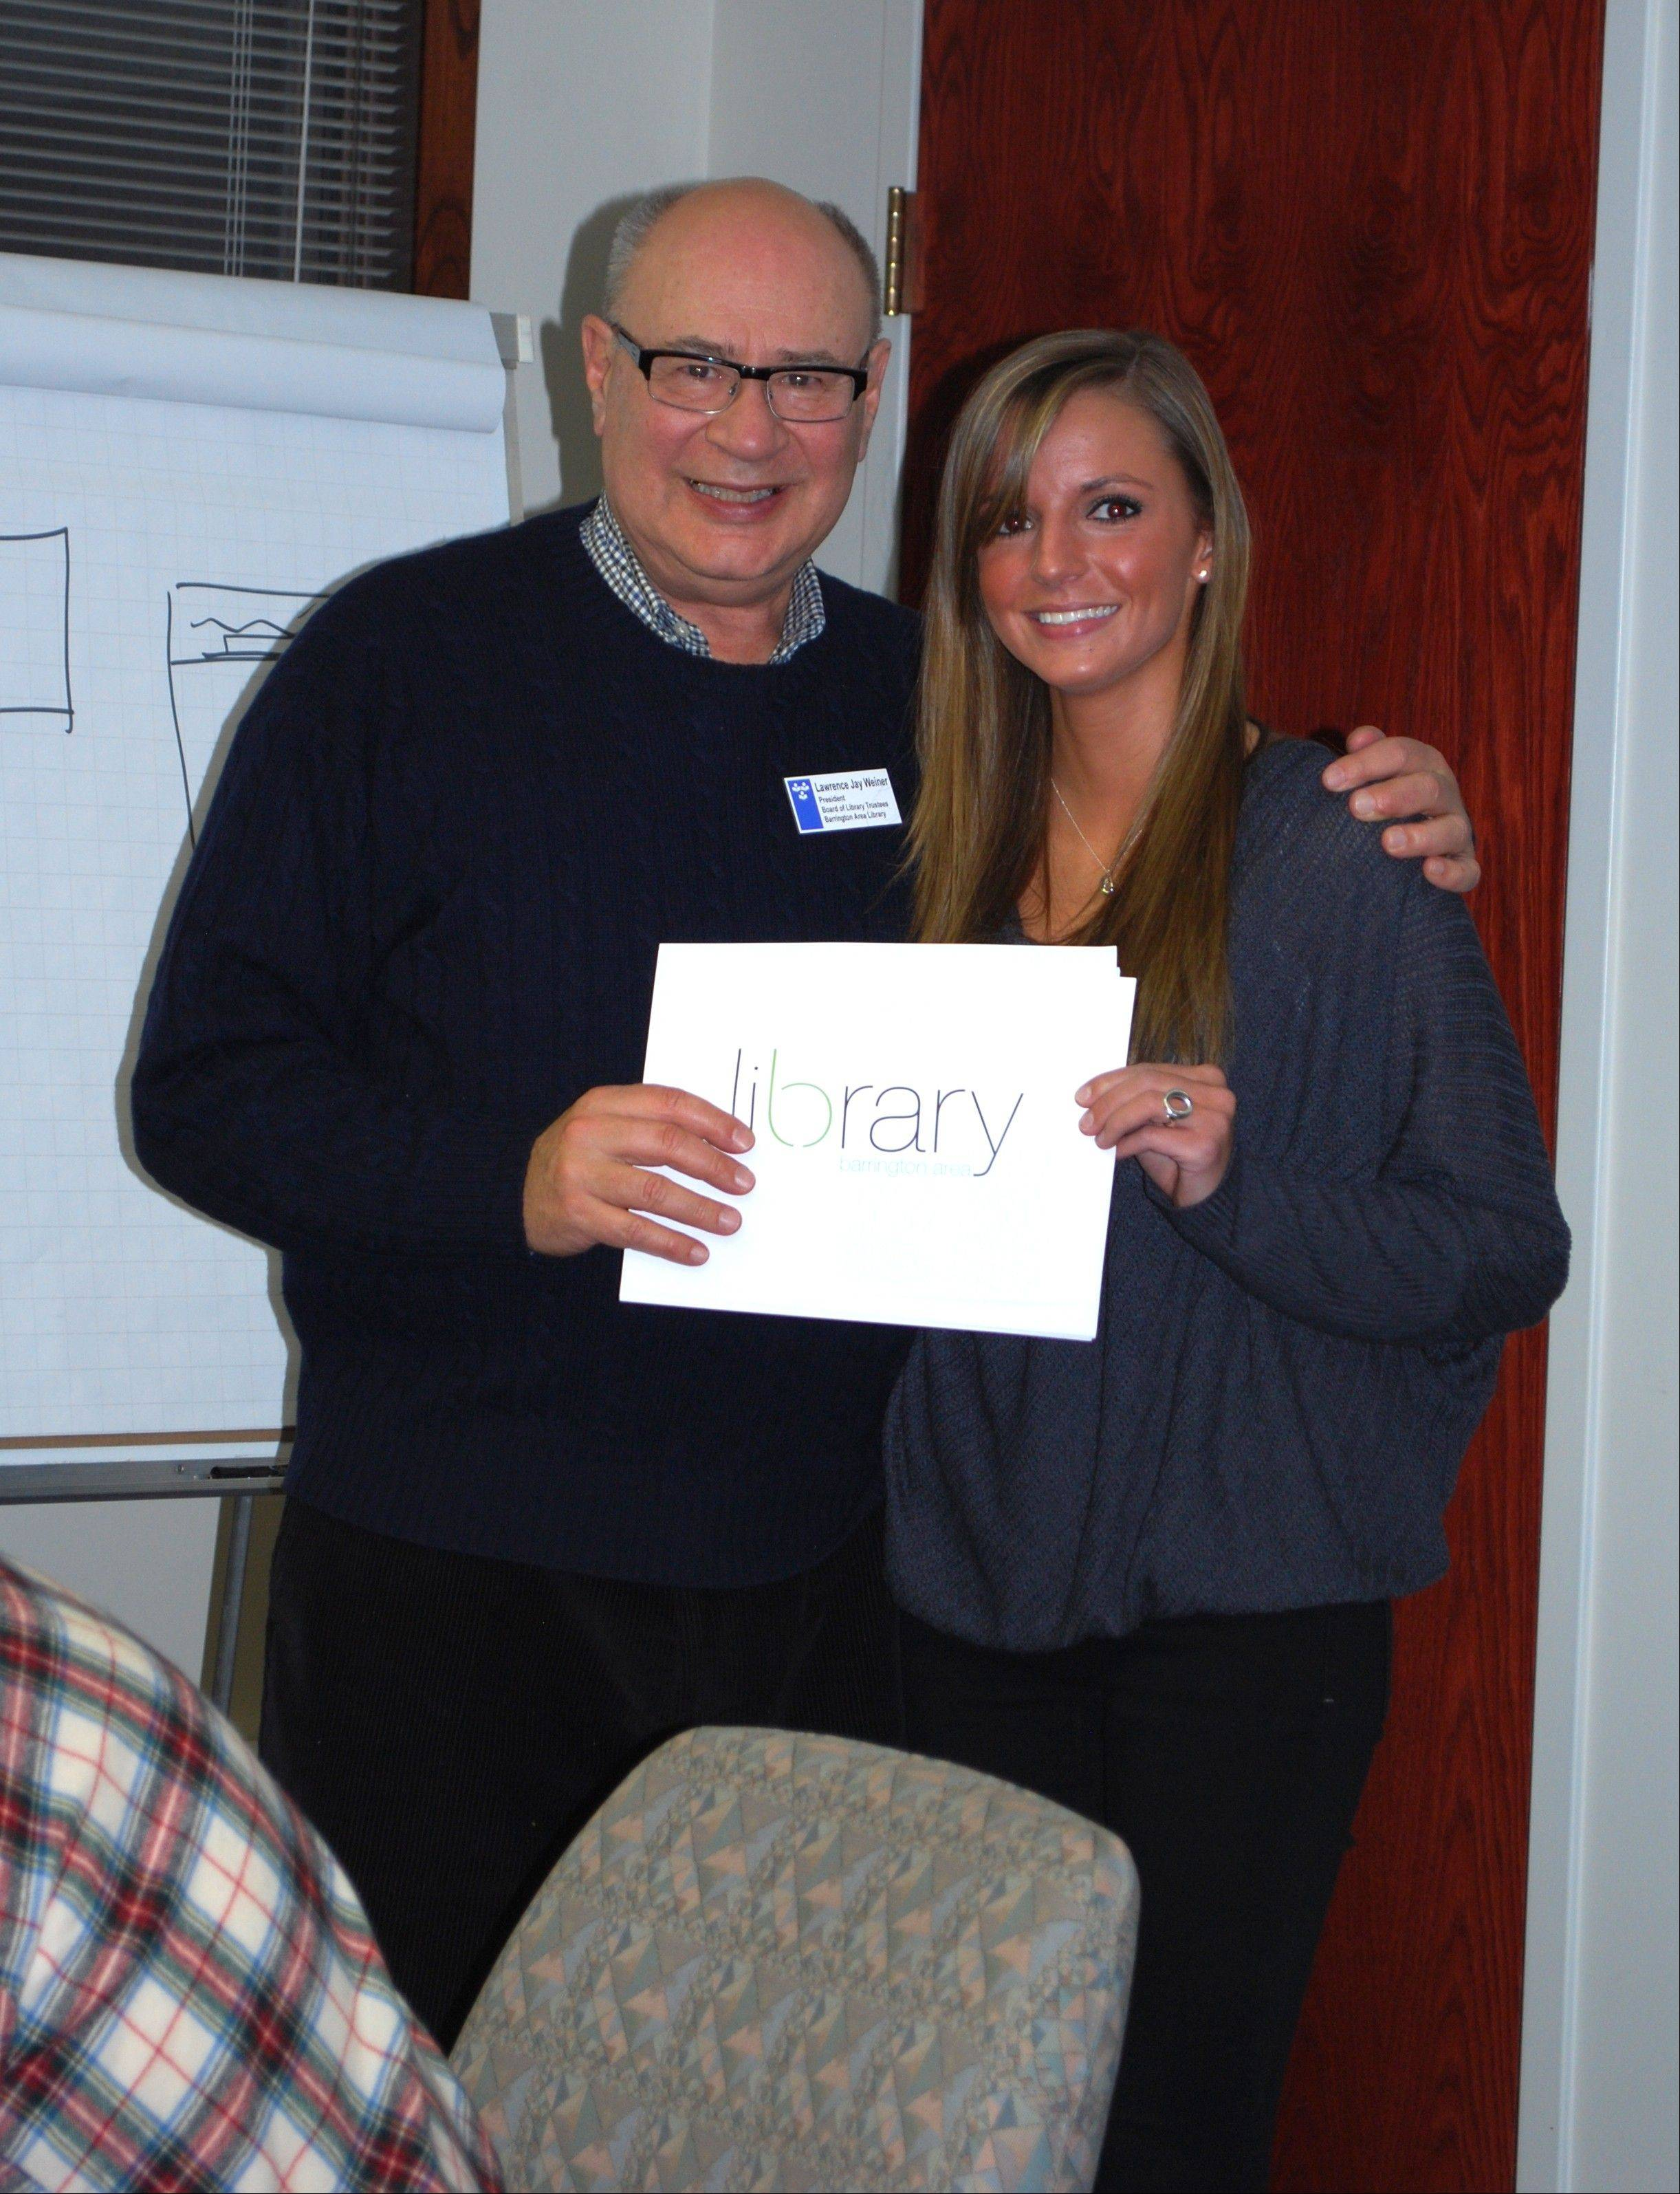 Former Library board of trustees President Lawrence J. Weiner congratulates Kasey Dasko on her winning logo.